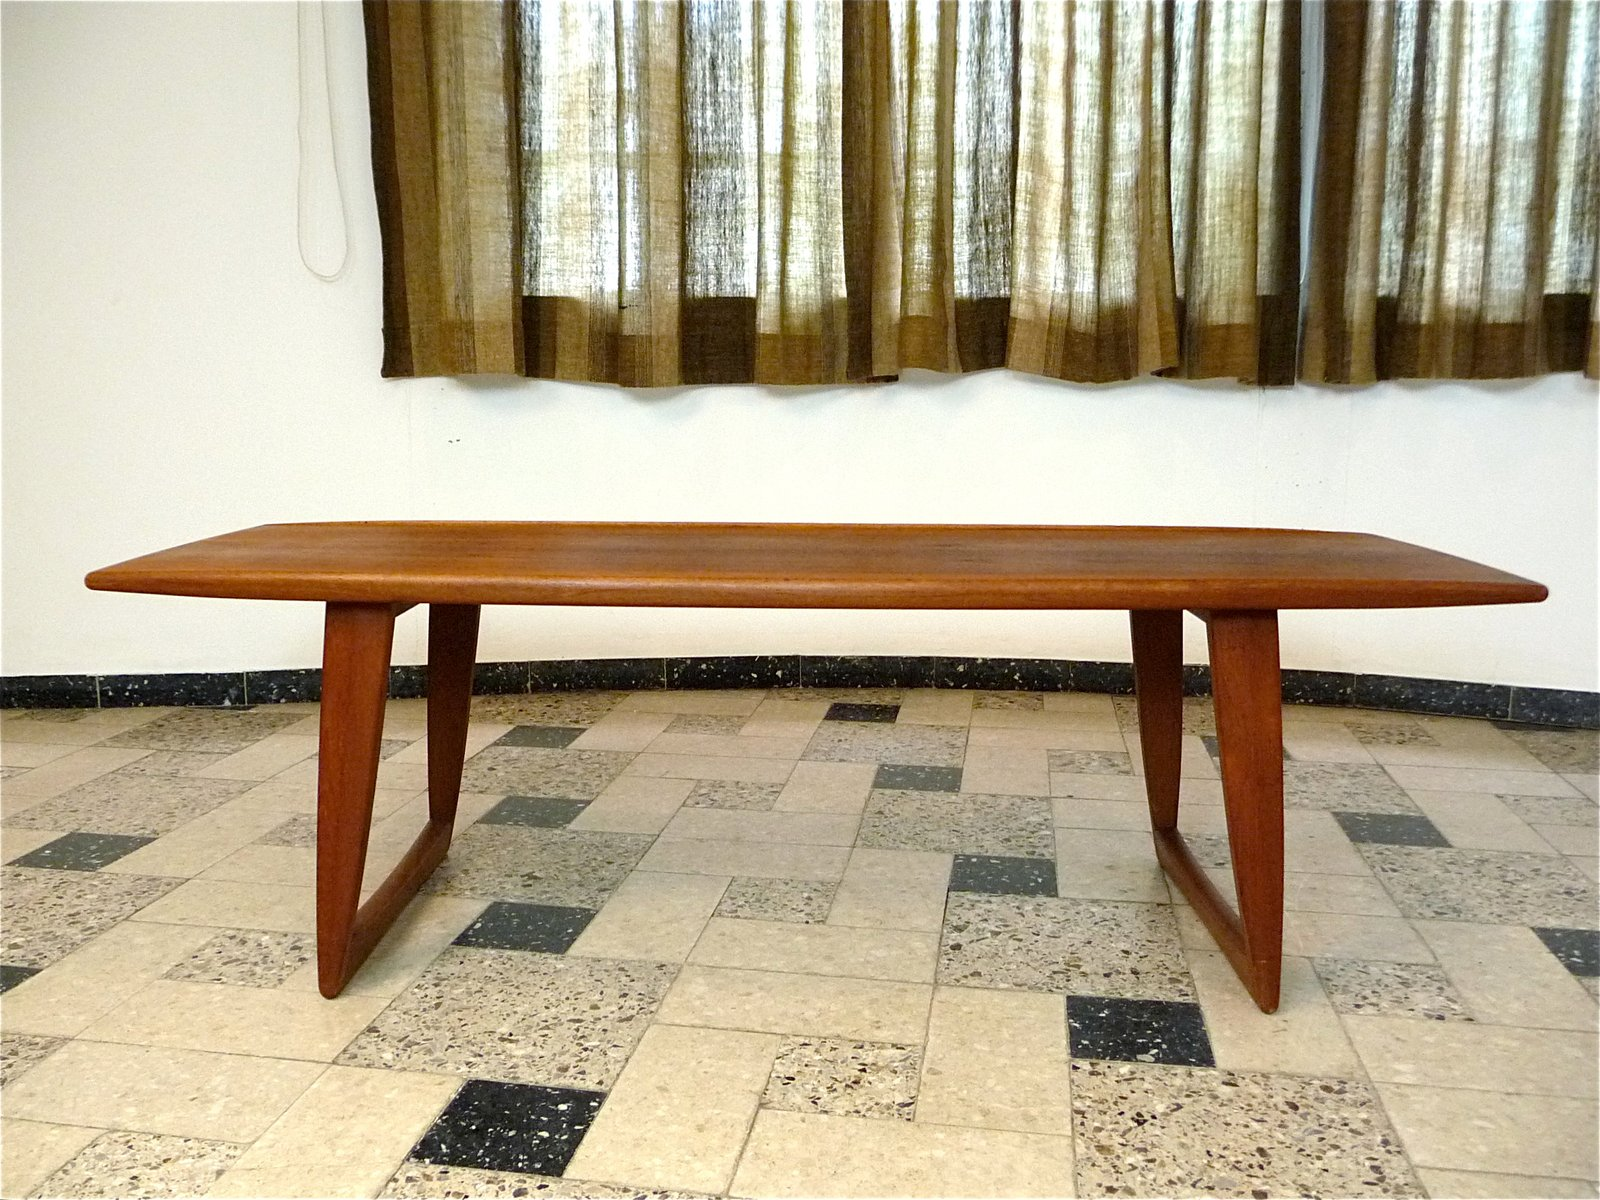 Danish Teak Coffee Table with BoatShaped Top 1960s for sale at Pamono